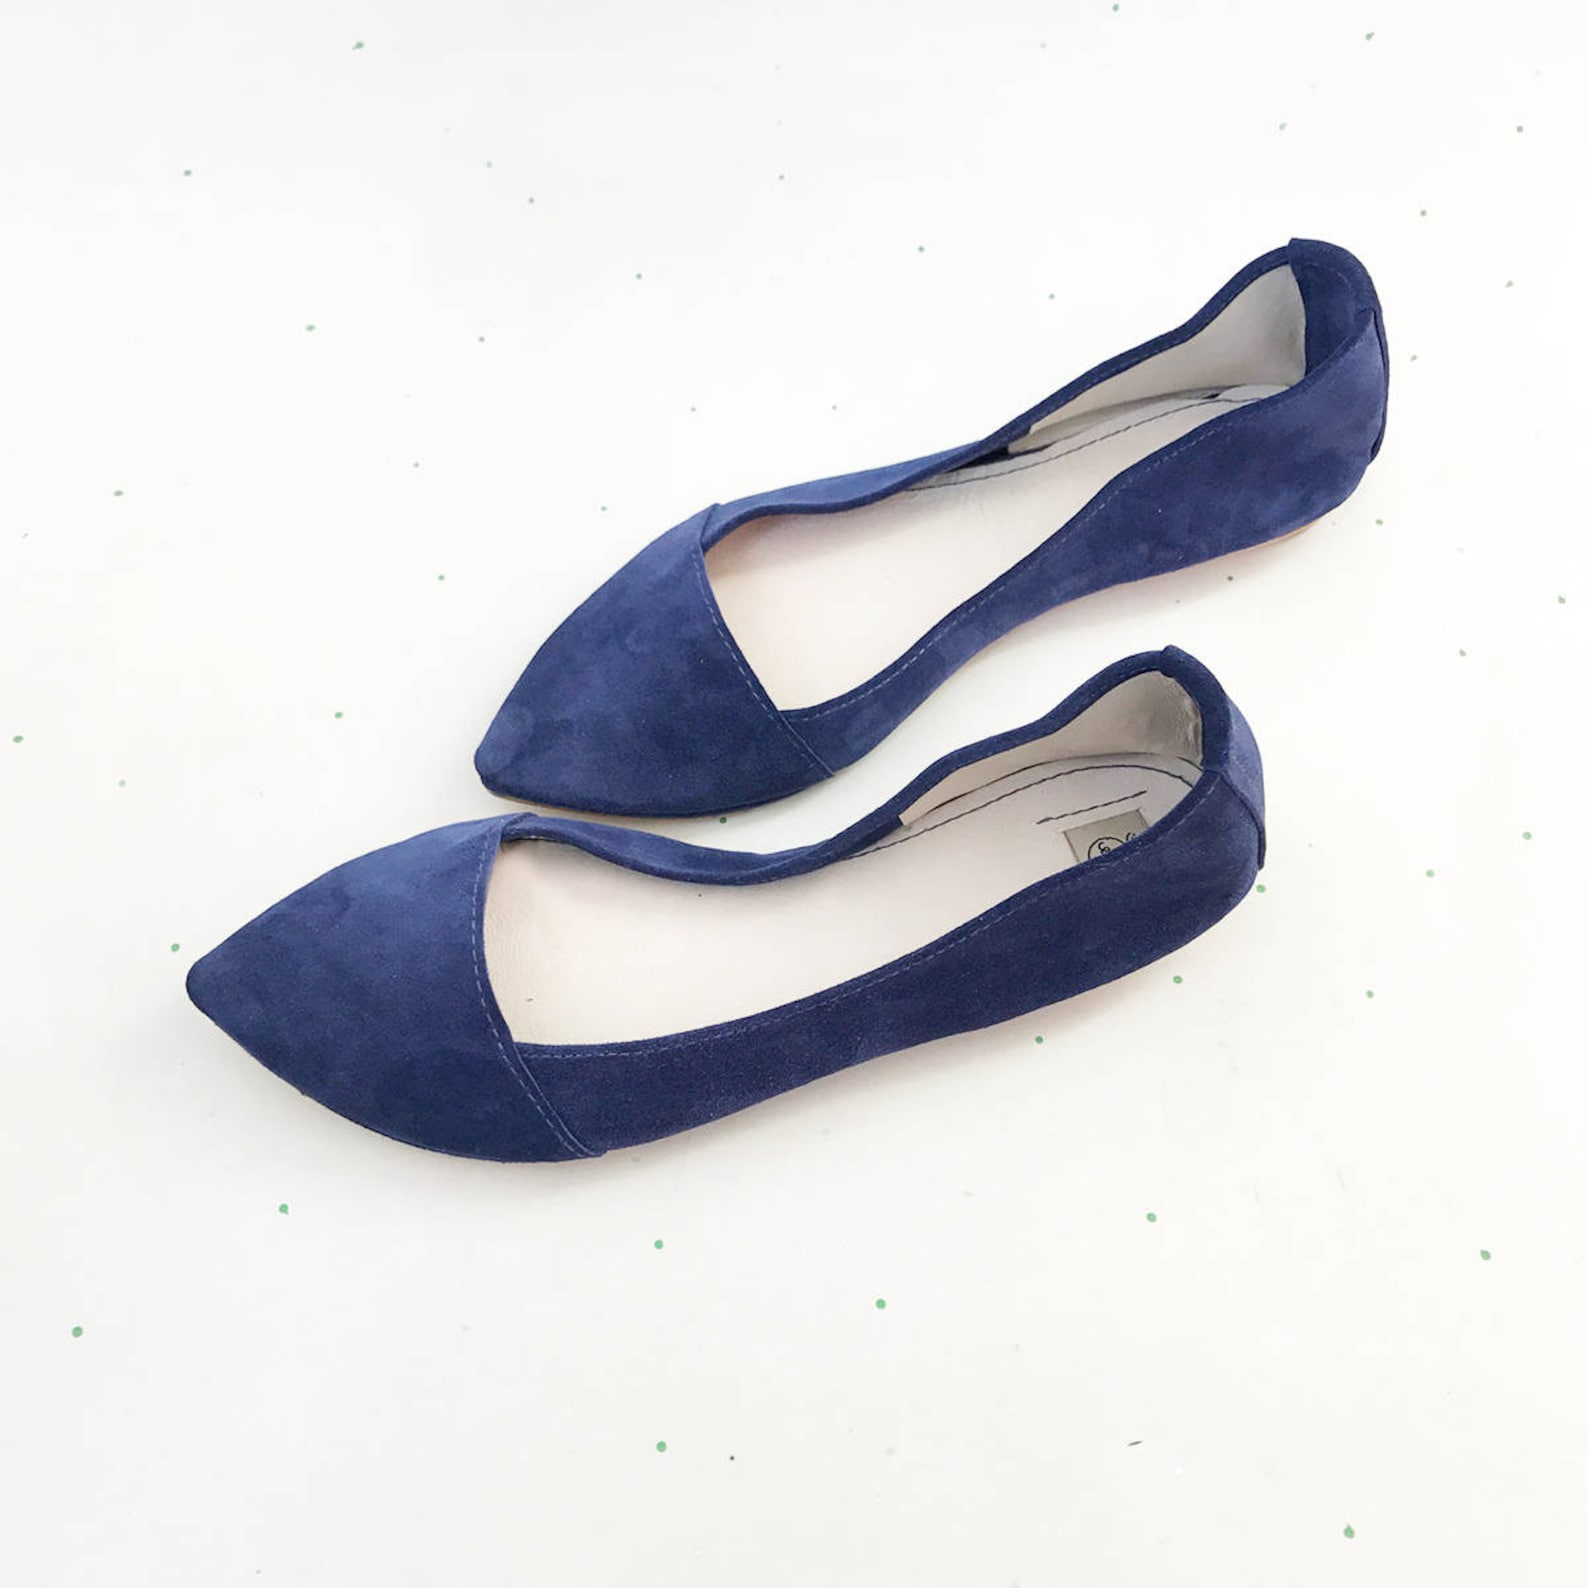 d' orsay shoes. pointy ballet flats. pointy shoes. pointy flats. pointed toe shoes. blue ballet flats. bridal shoes. somethi